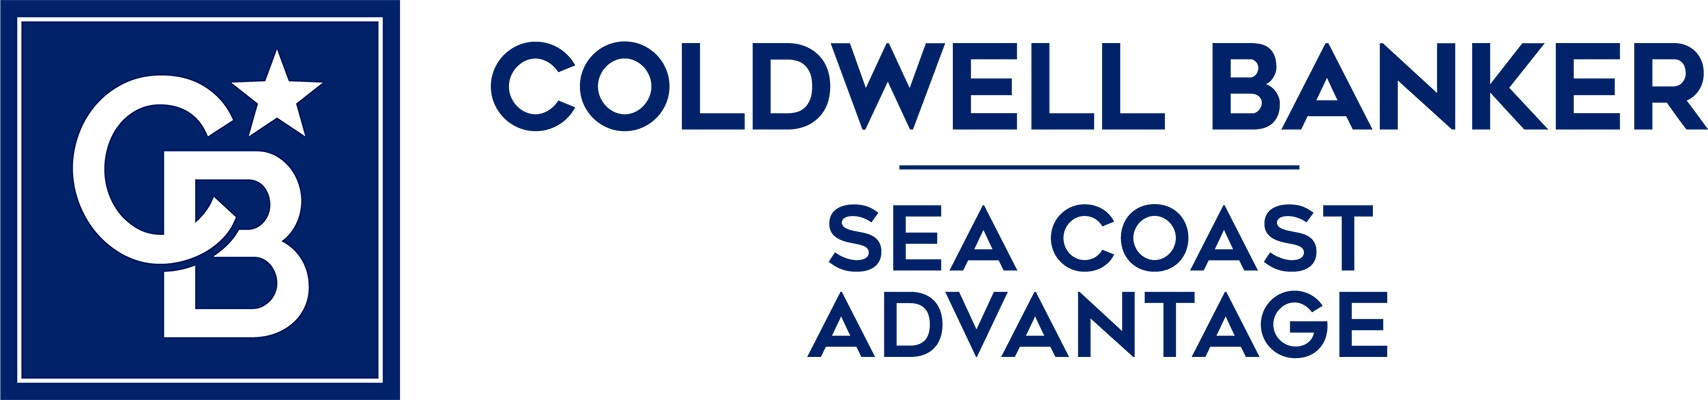 Justice Andrews - Coldwell Banker Sea Coast Advantage